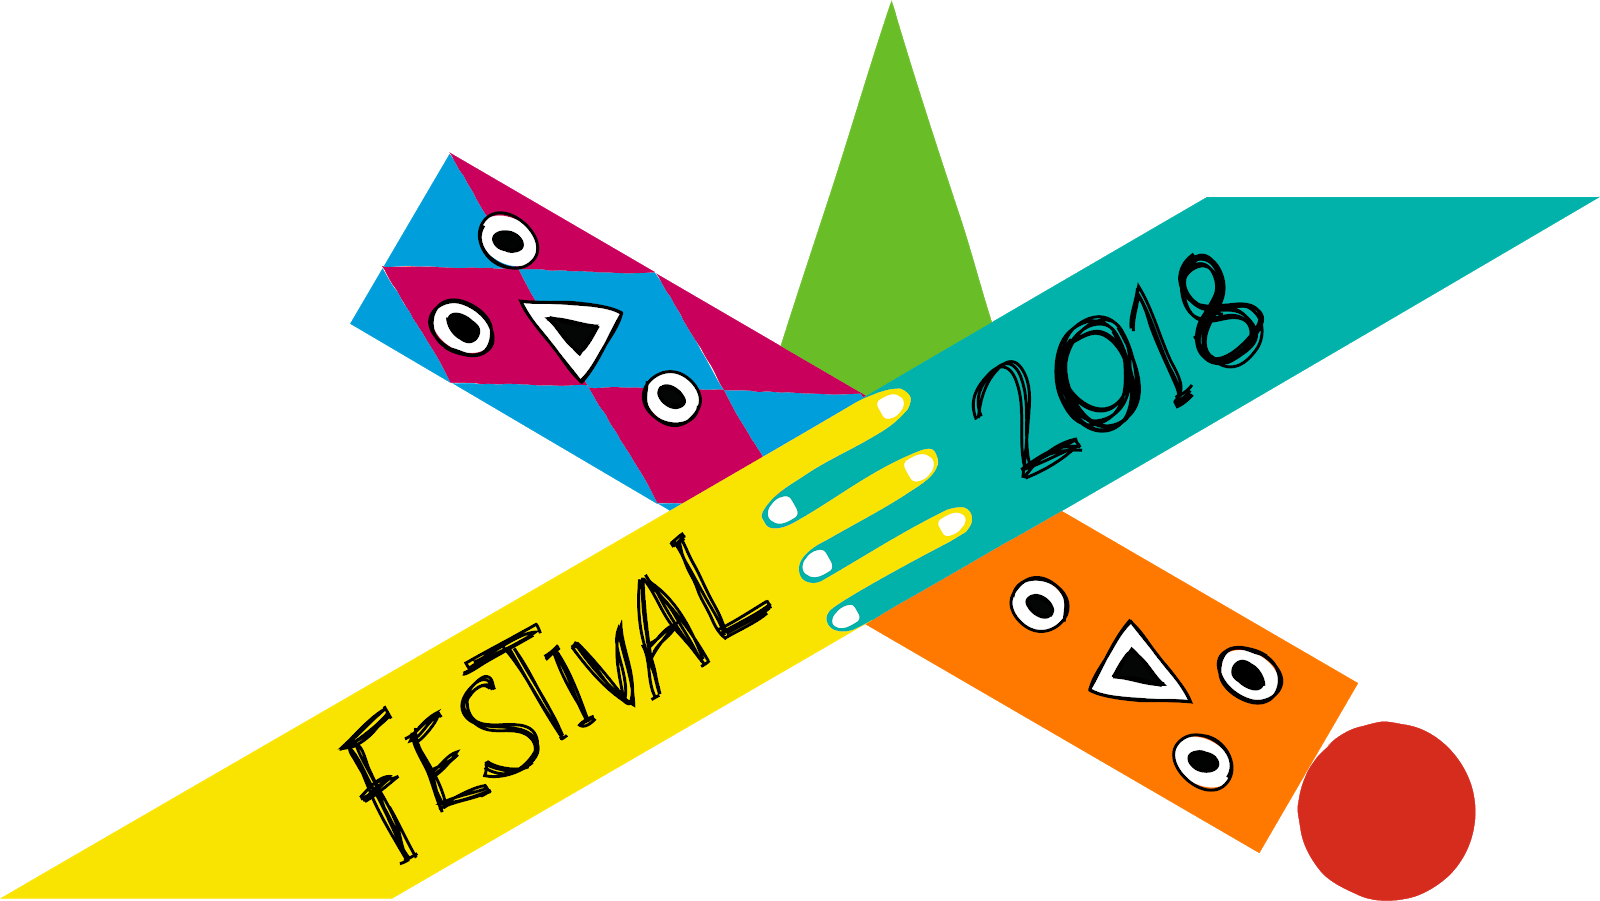 Supported by Festival 2018